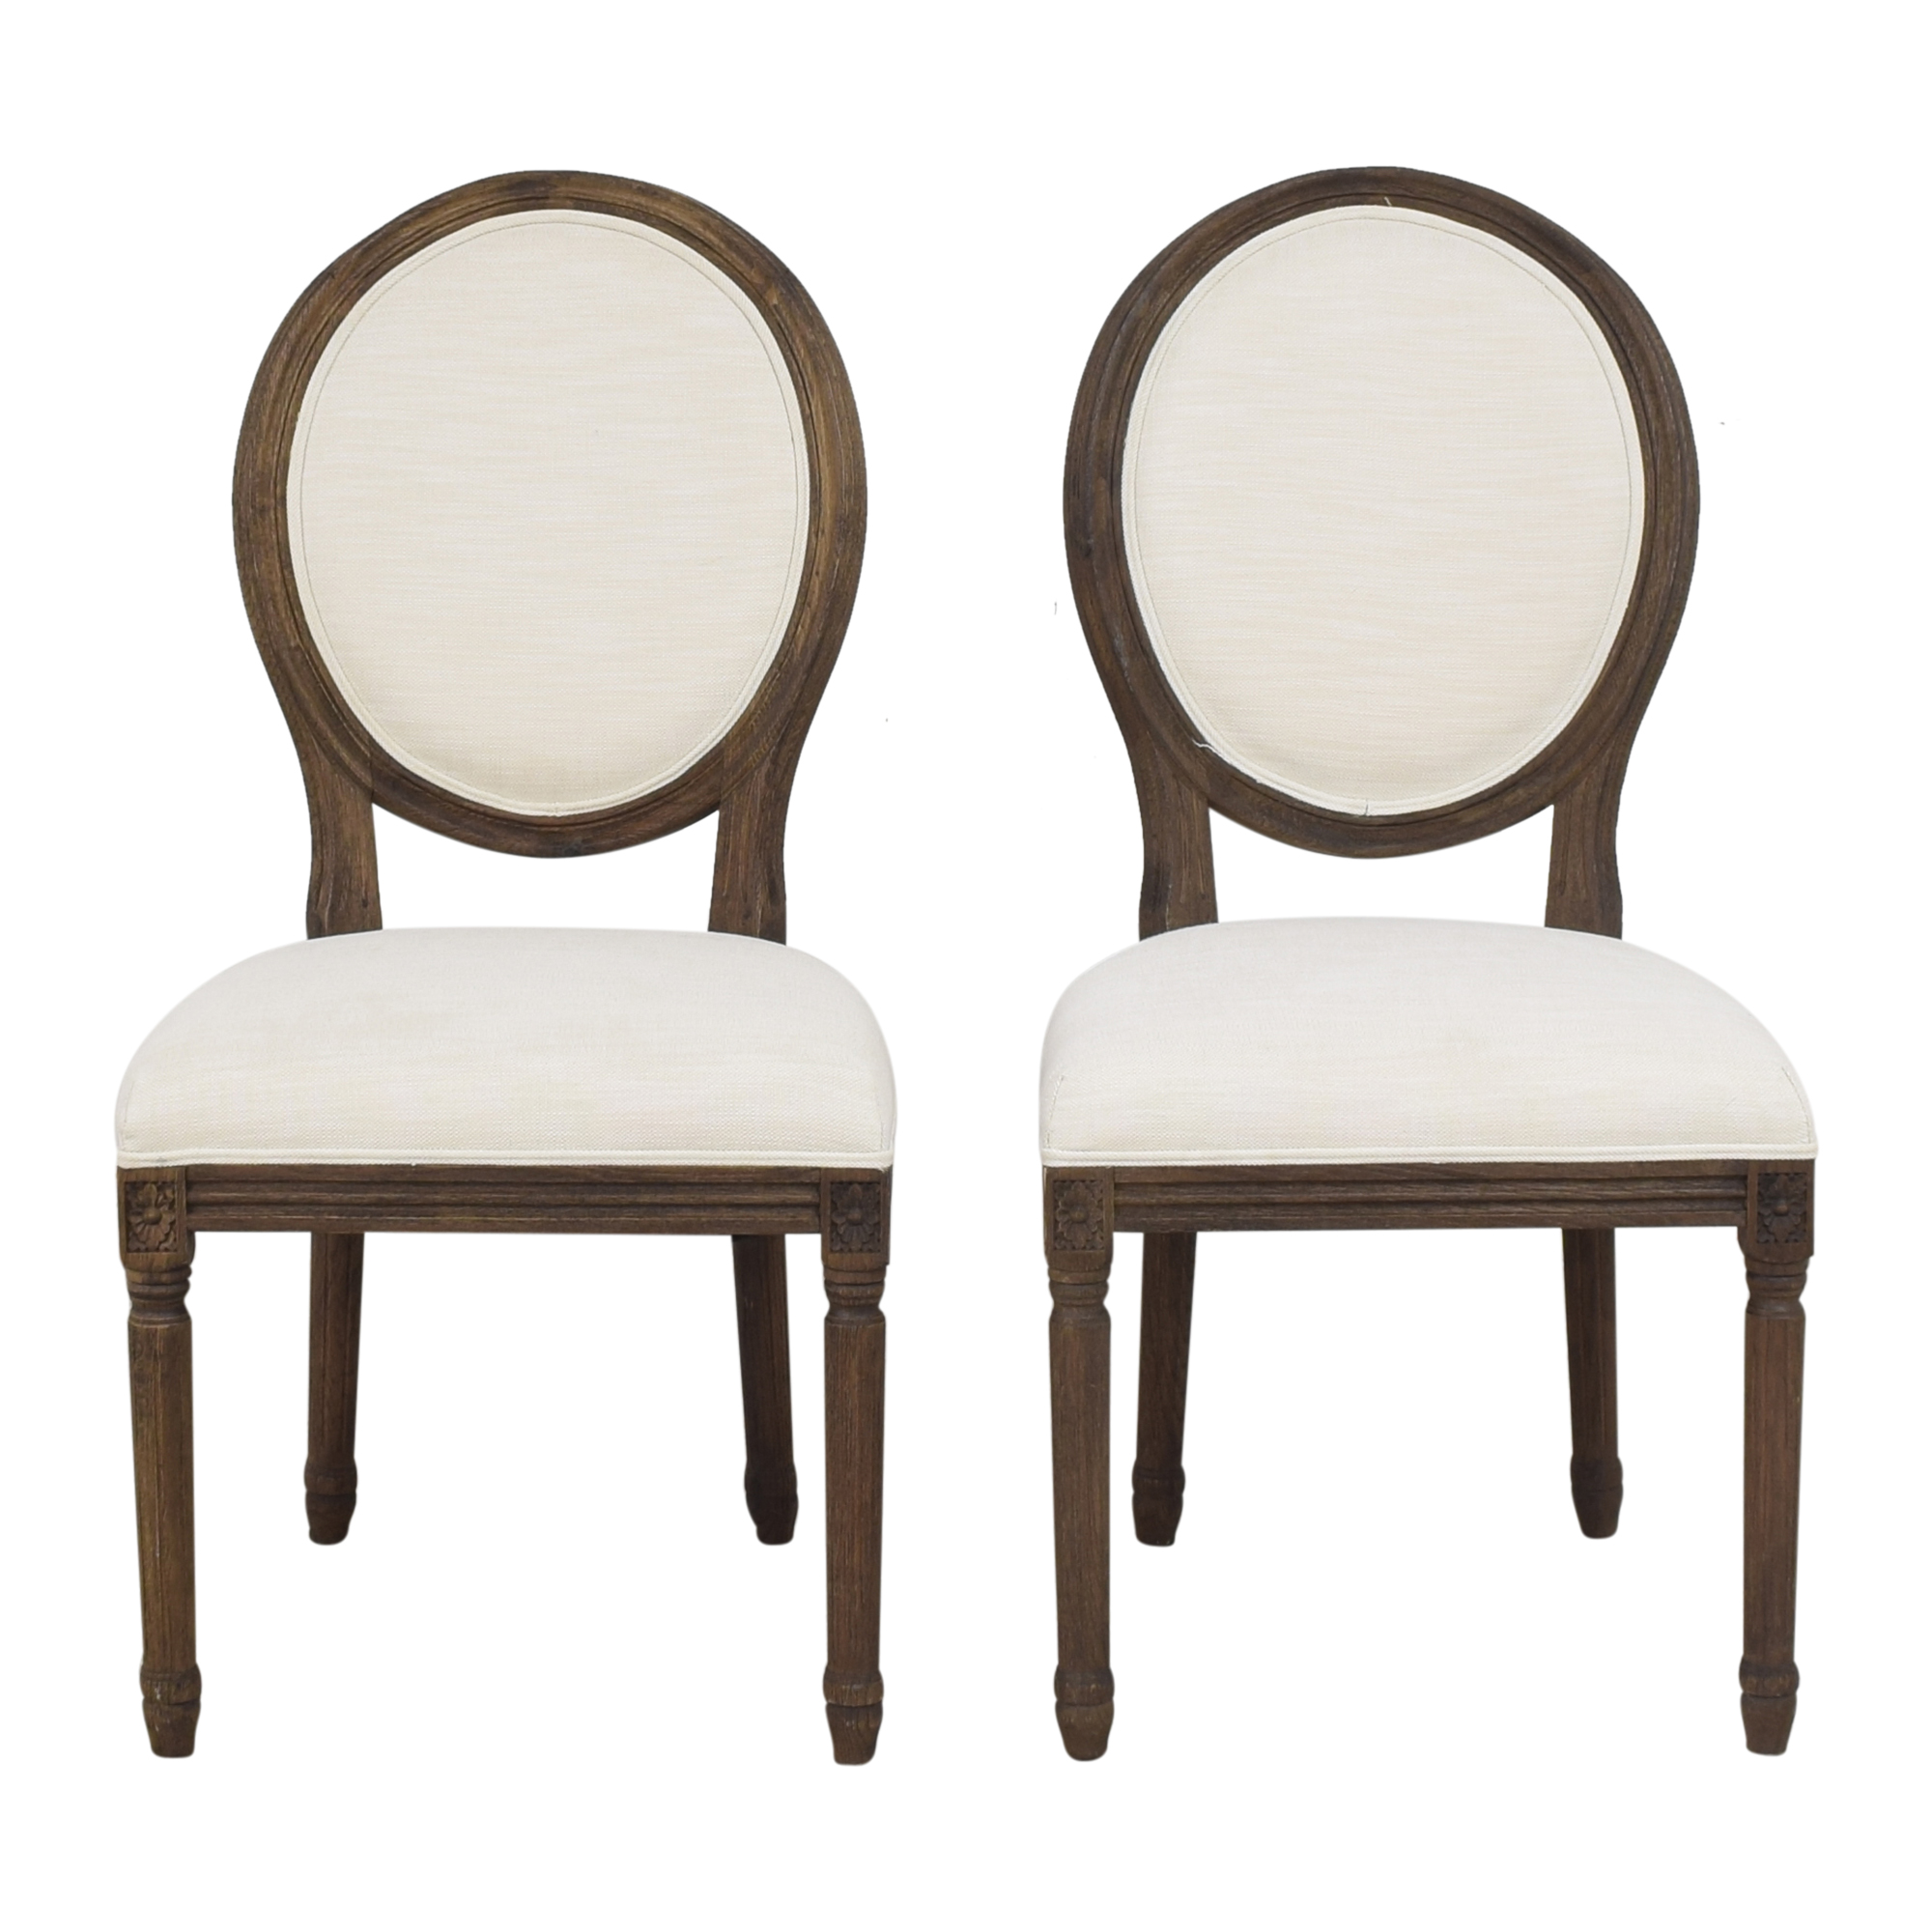 Restoration Hardware Restoration Hardware Vintage French Round Side Dining Chairs price